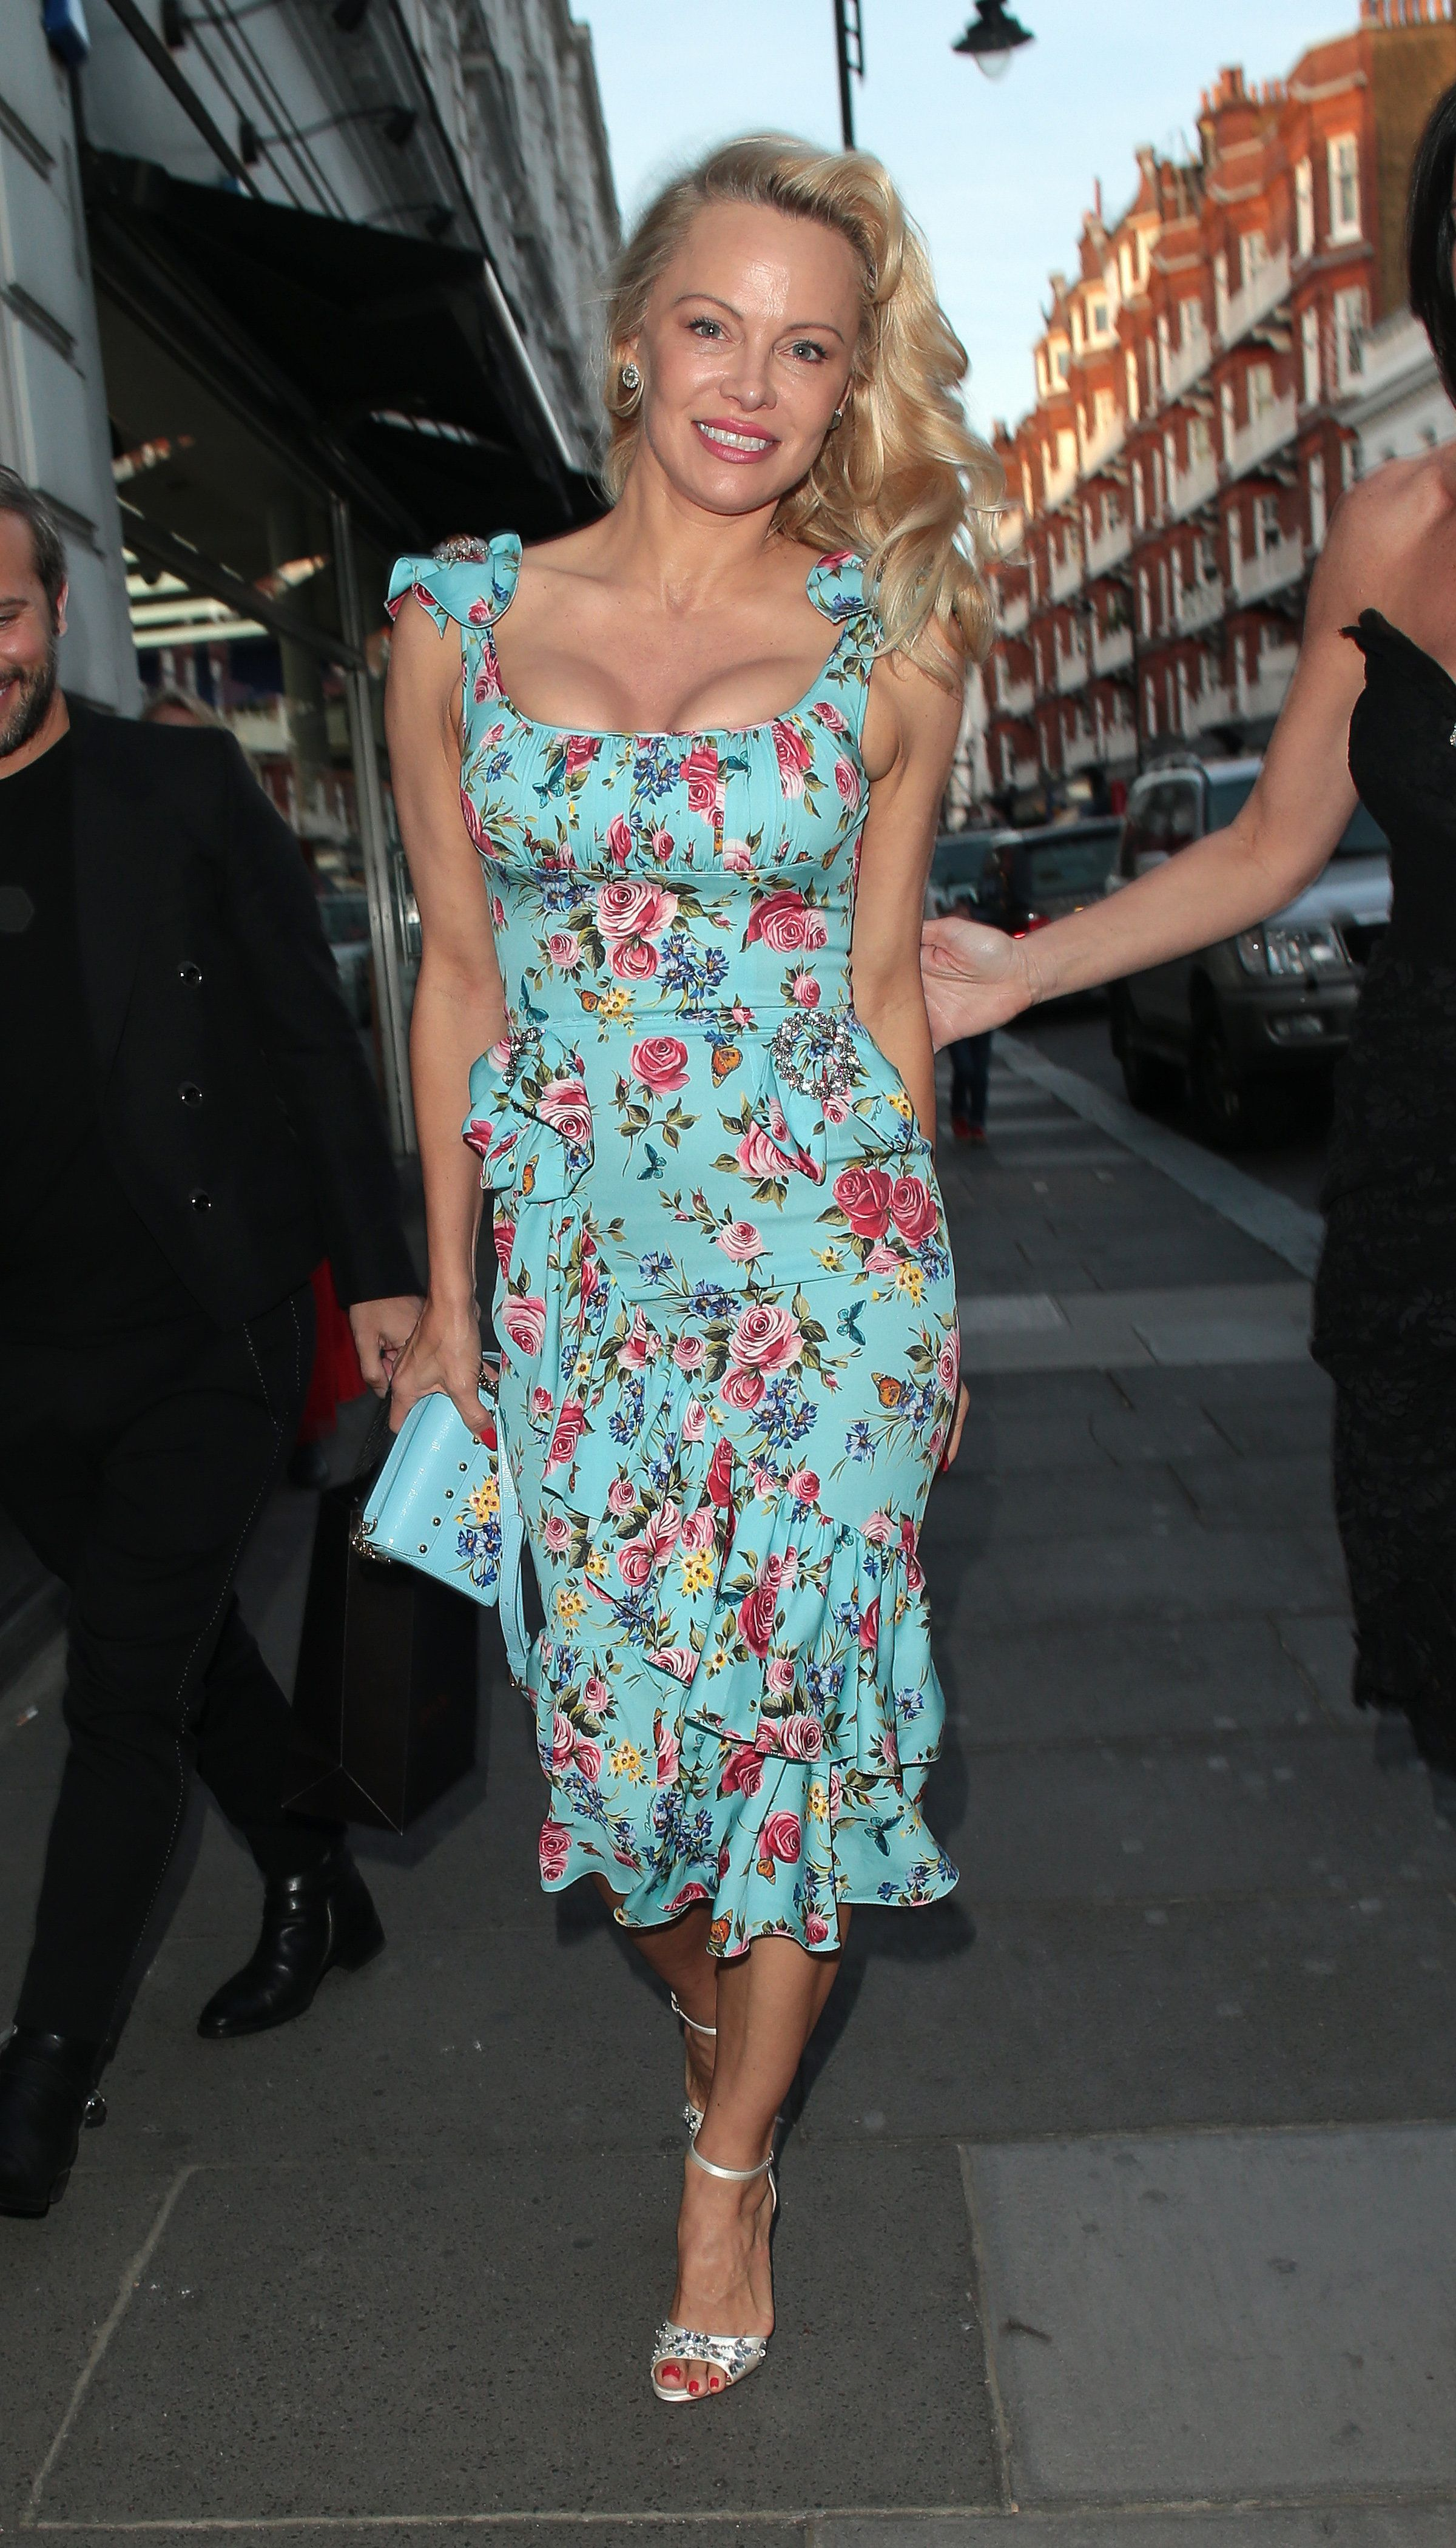 Pamela Anderson attends aparty at Albert's on April 3 in London, England.